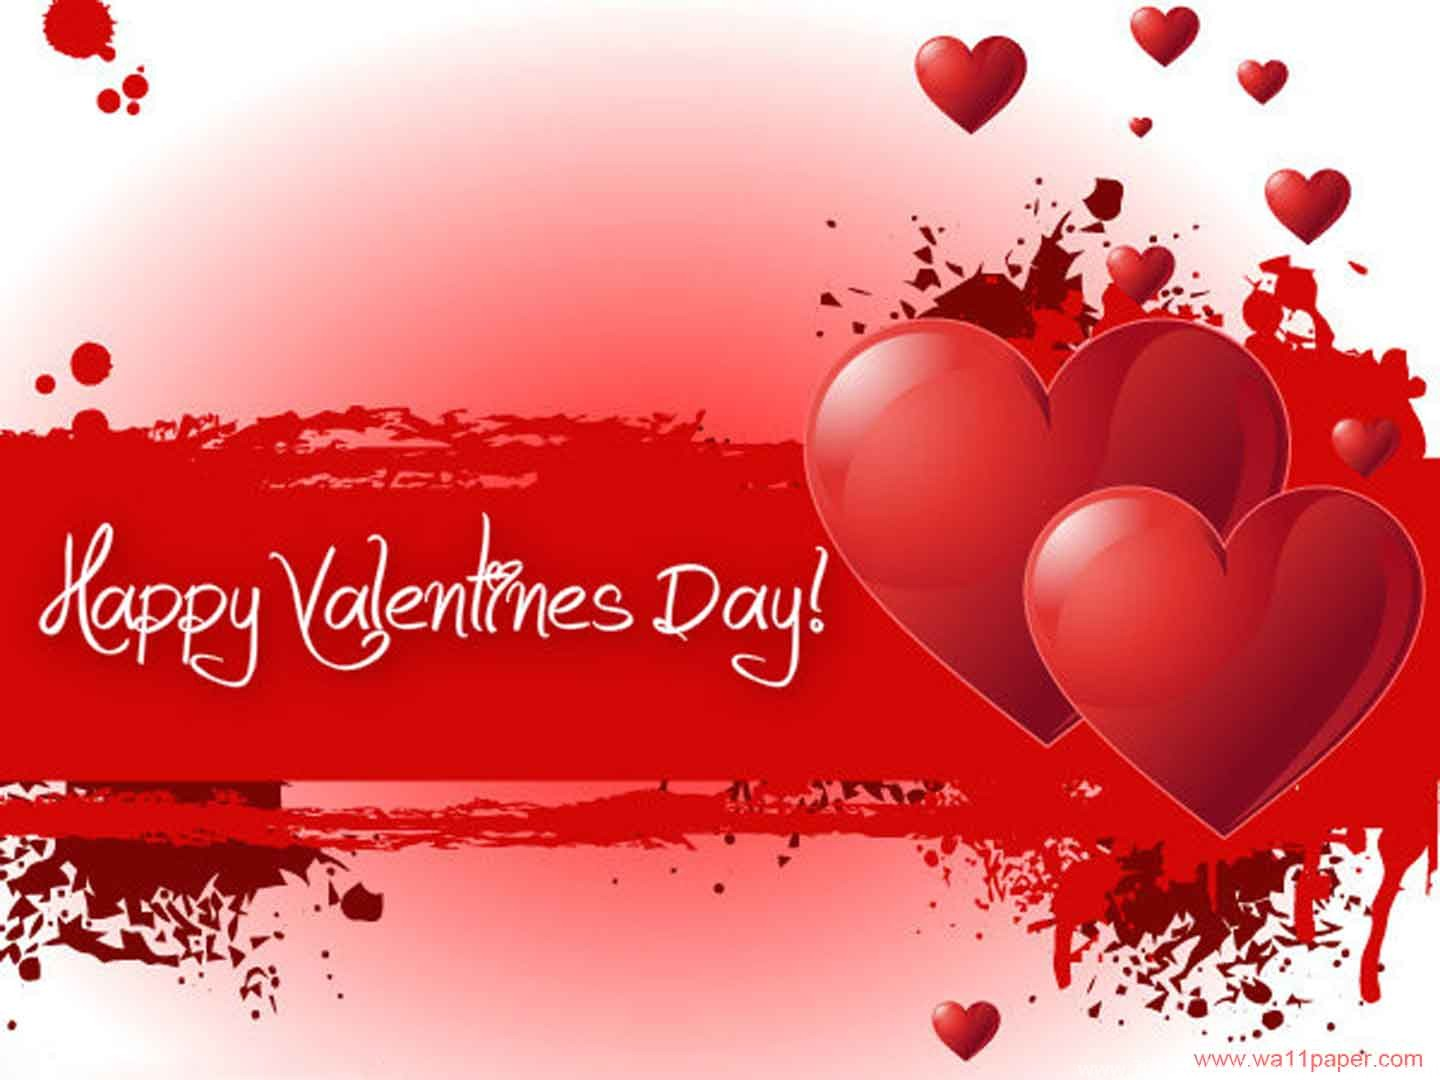 Valentines day poems valentines day pictures valentine messages – Great Valentines Day Card Messages